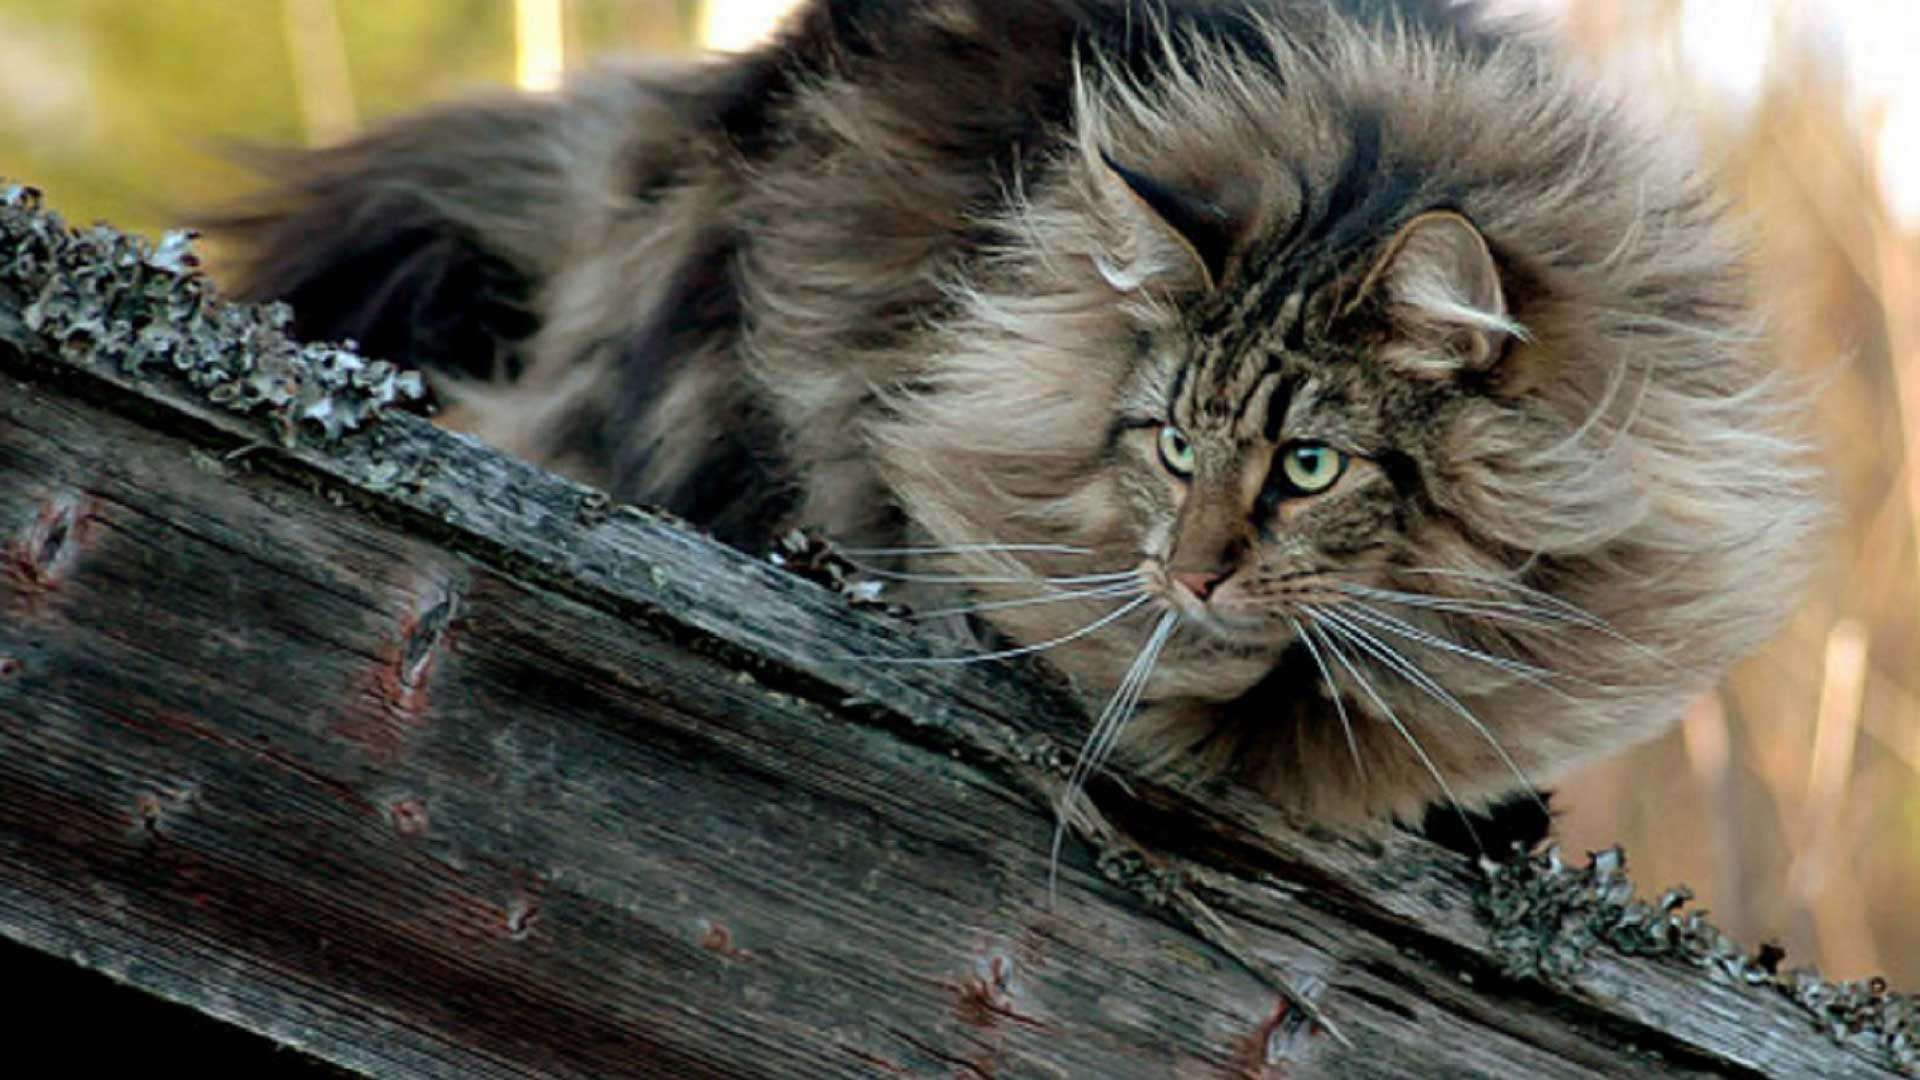 The Norwegian Forest Cat Is A Large Muscular Cat Adapted To A